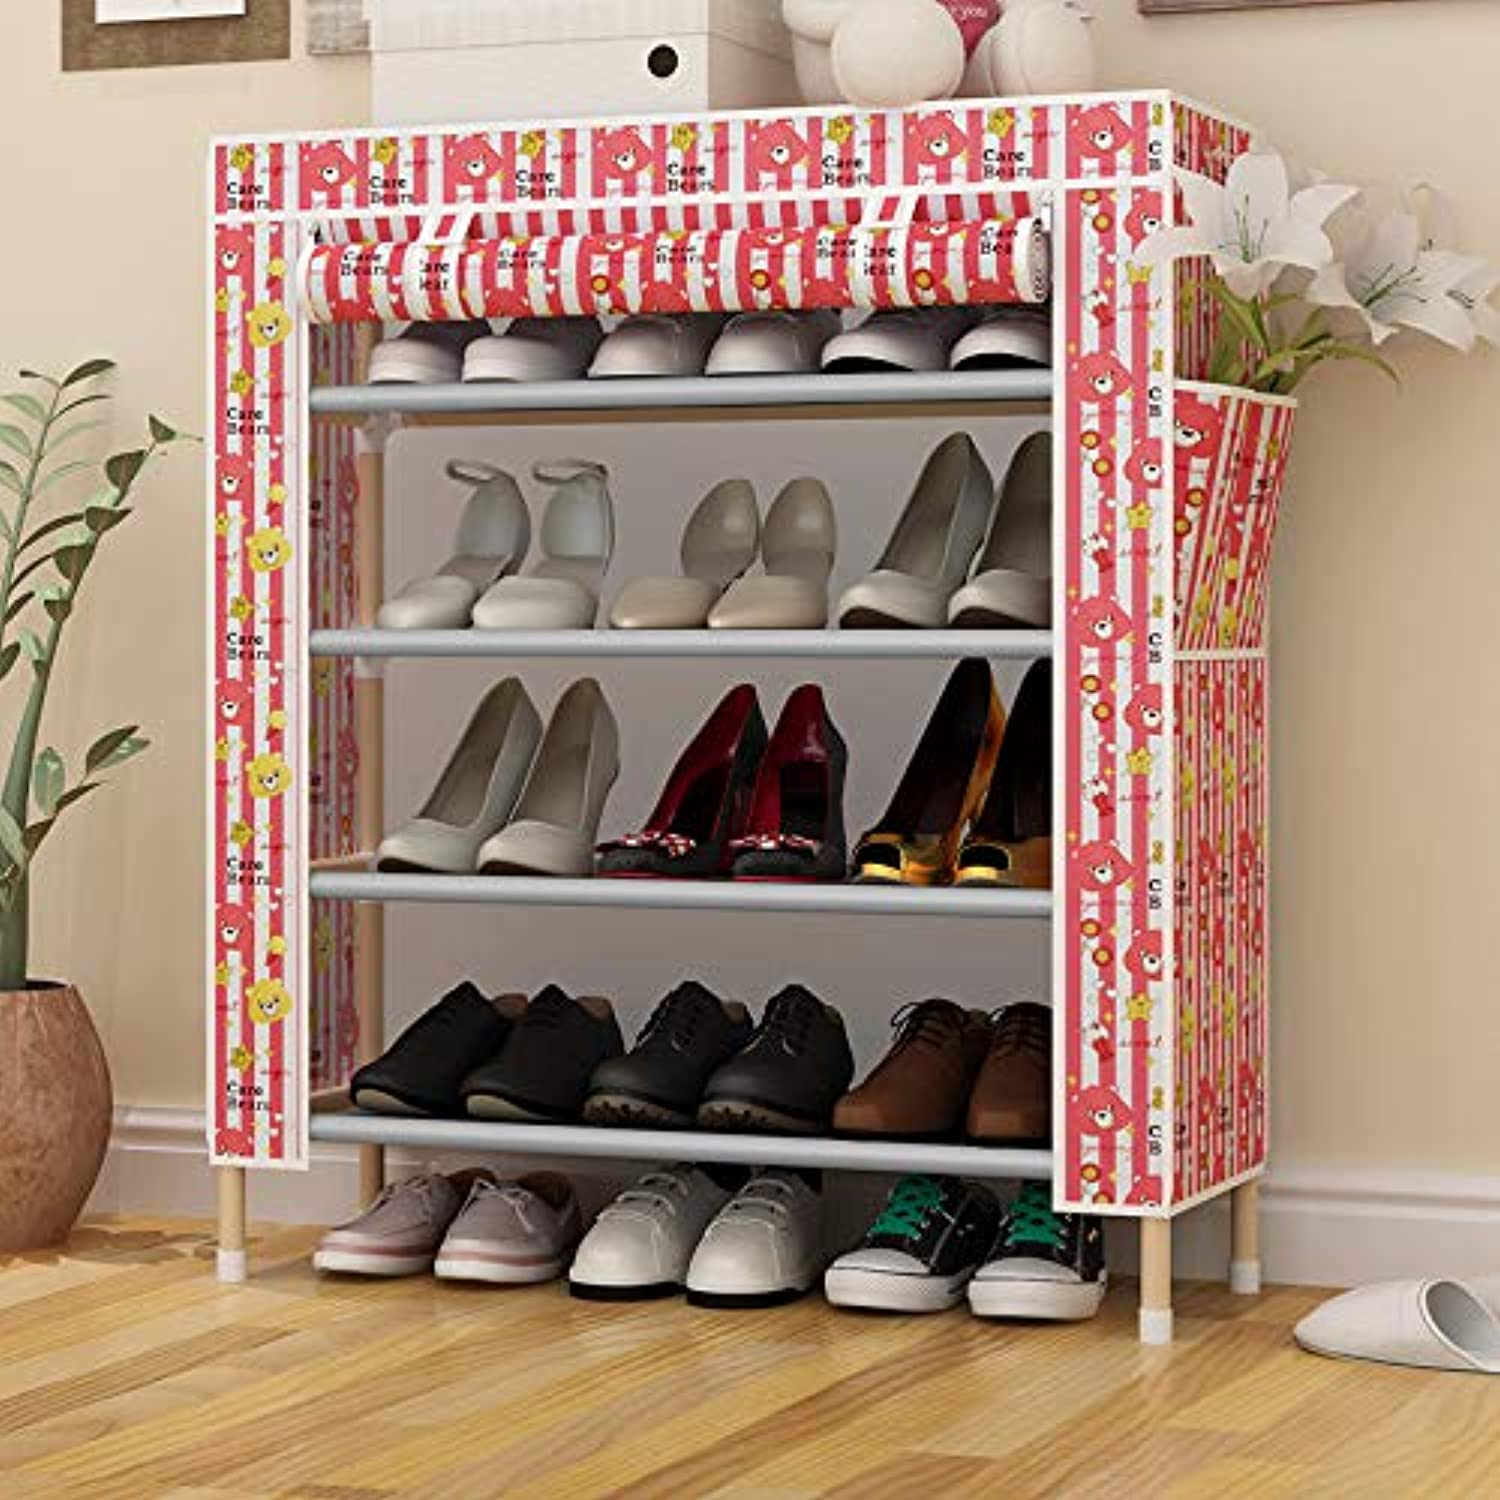 Simple Home, Storage shoes Cabinet, Dustproof Storage Cabinet, colorful Maple Leaf